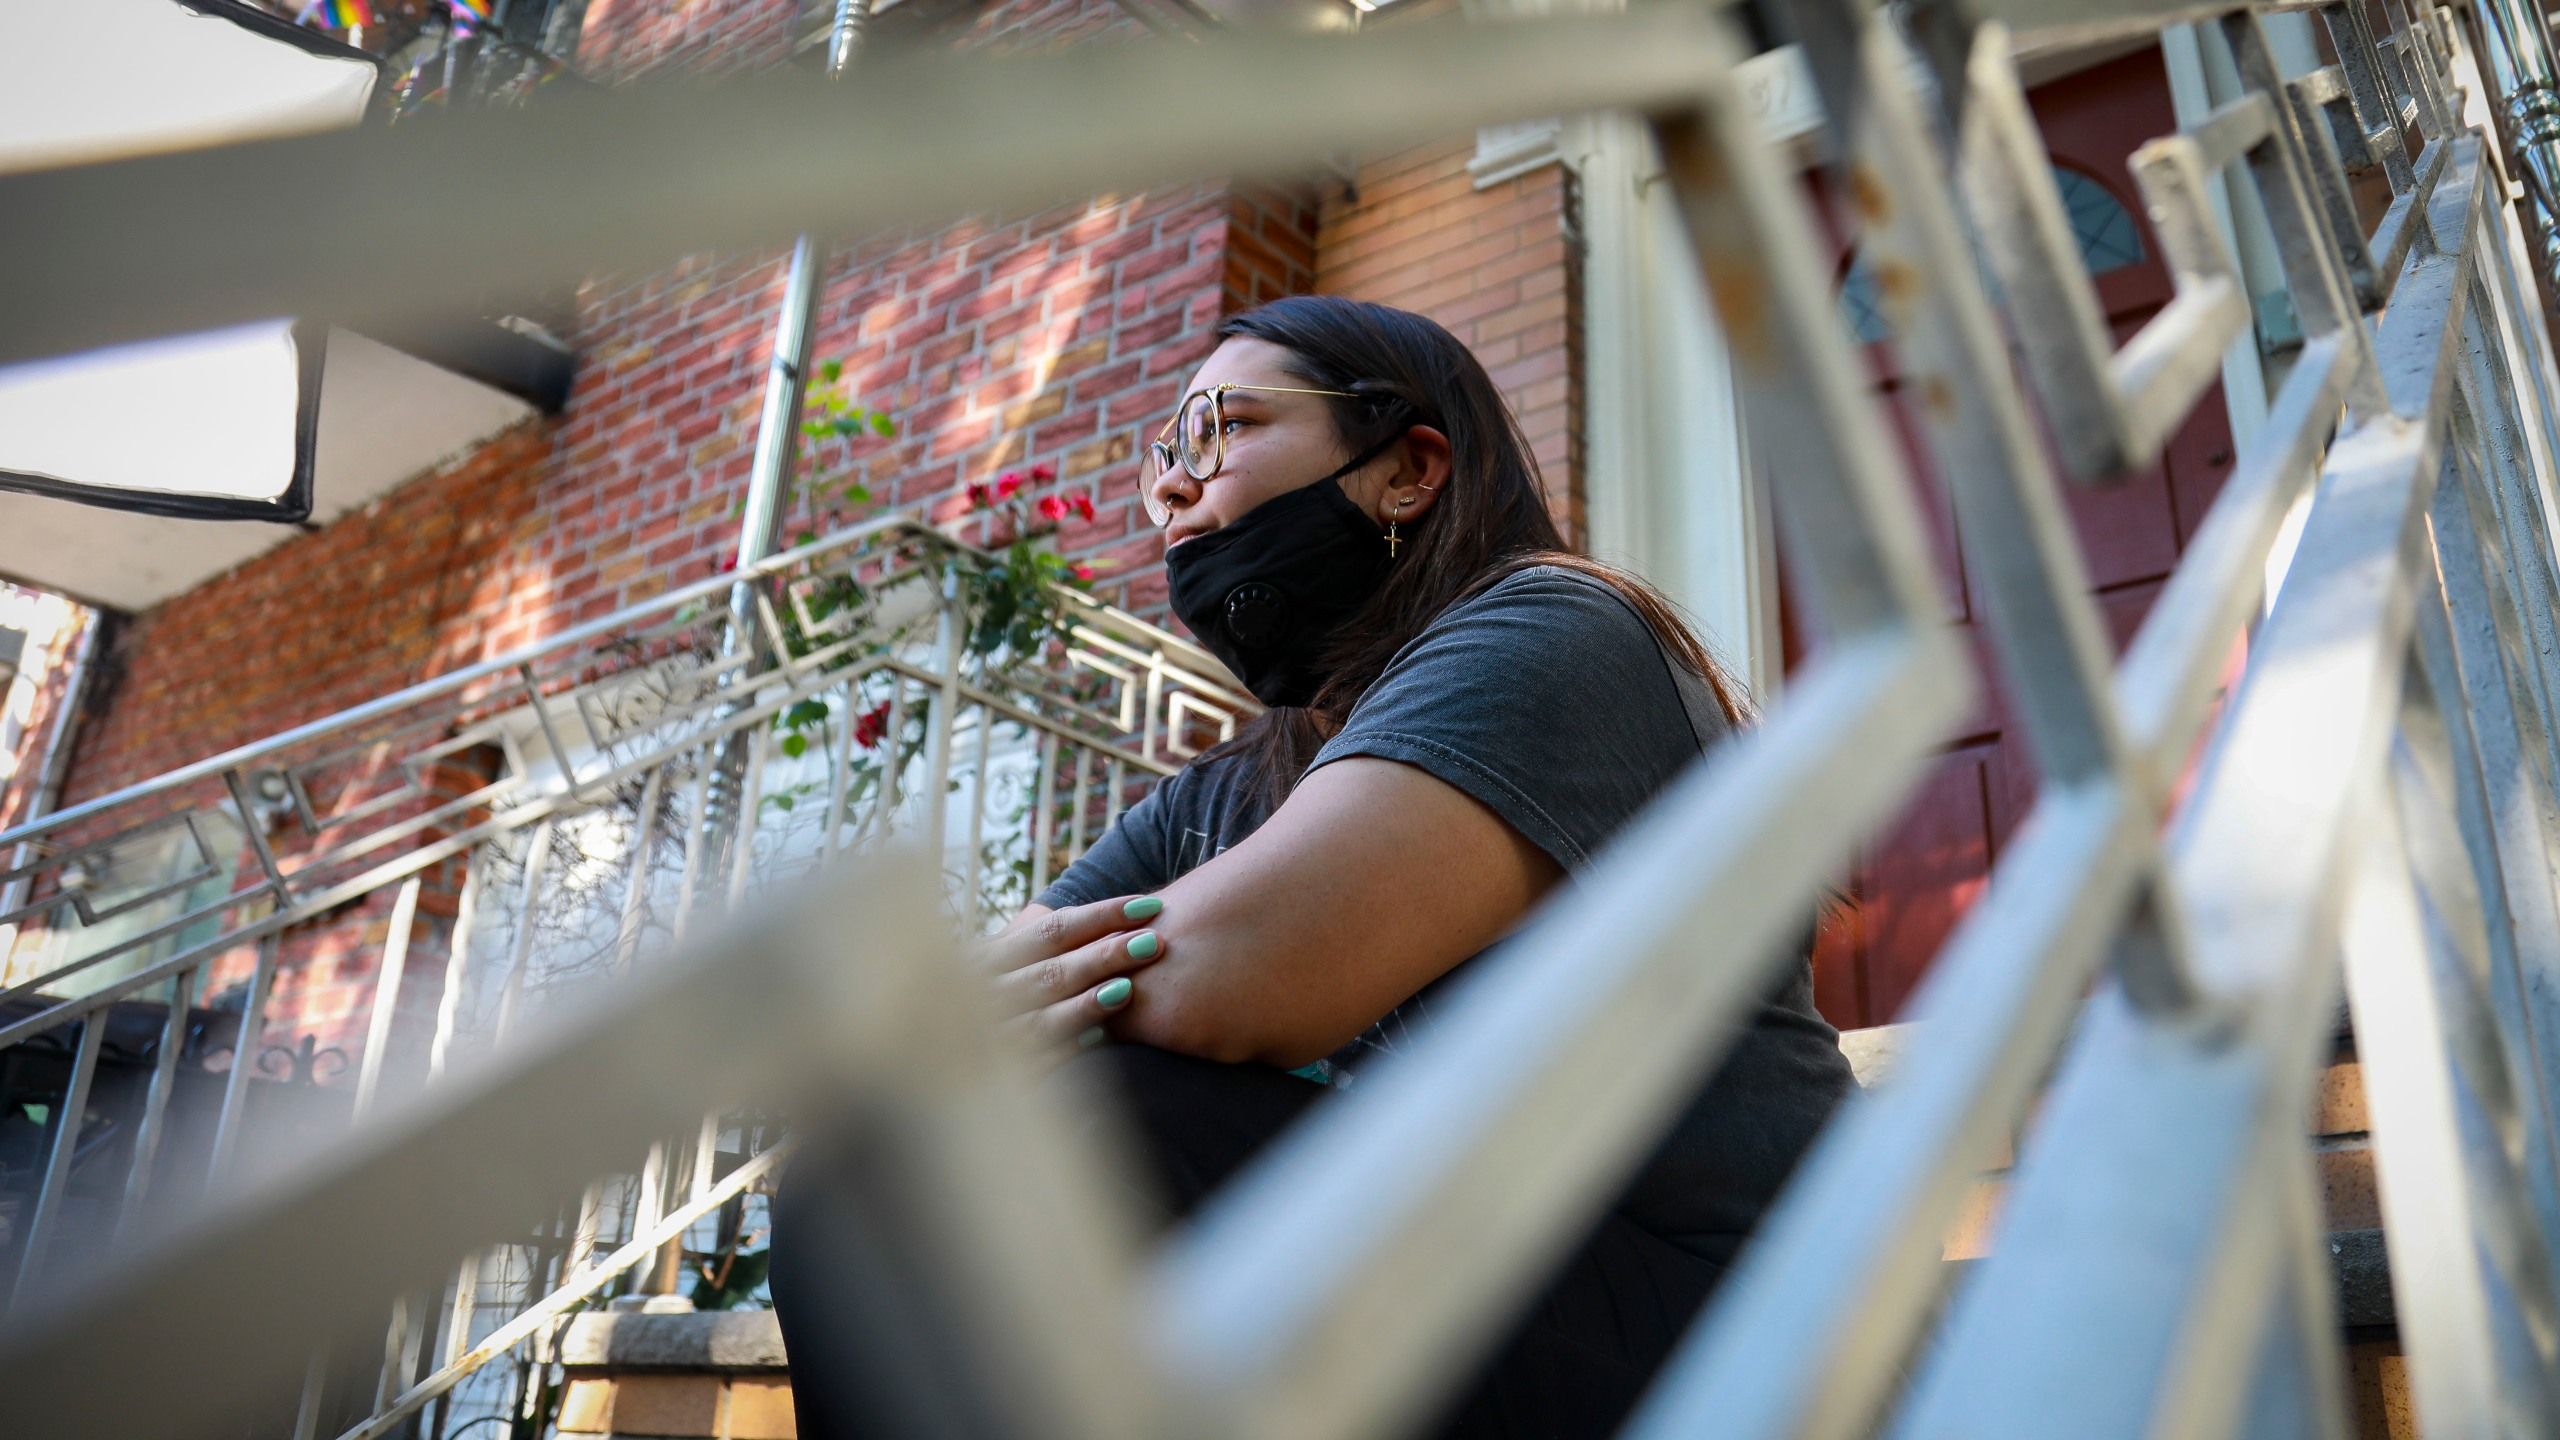 Natalia Afonso, 27, an international student from Brazil at Brooklyn College, sits on a stoop outside her home in New York during an interview on July 9, 2020. (Bebeto Matthews / Associated Press)